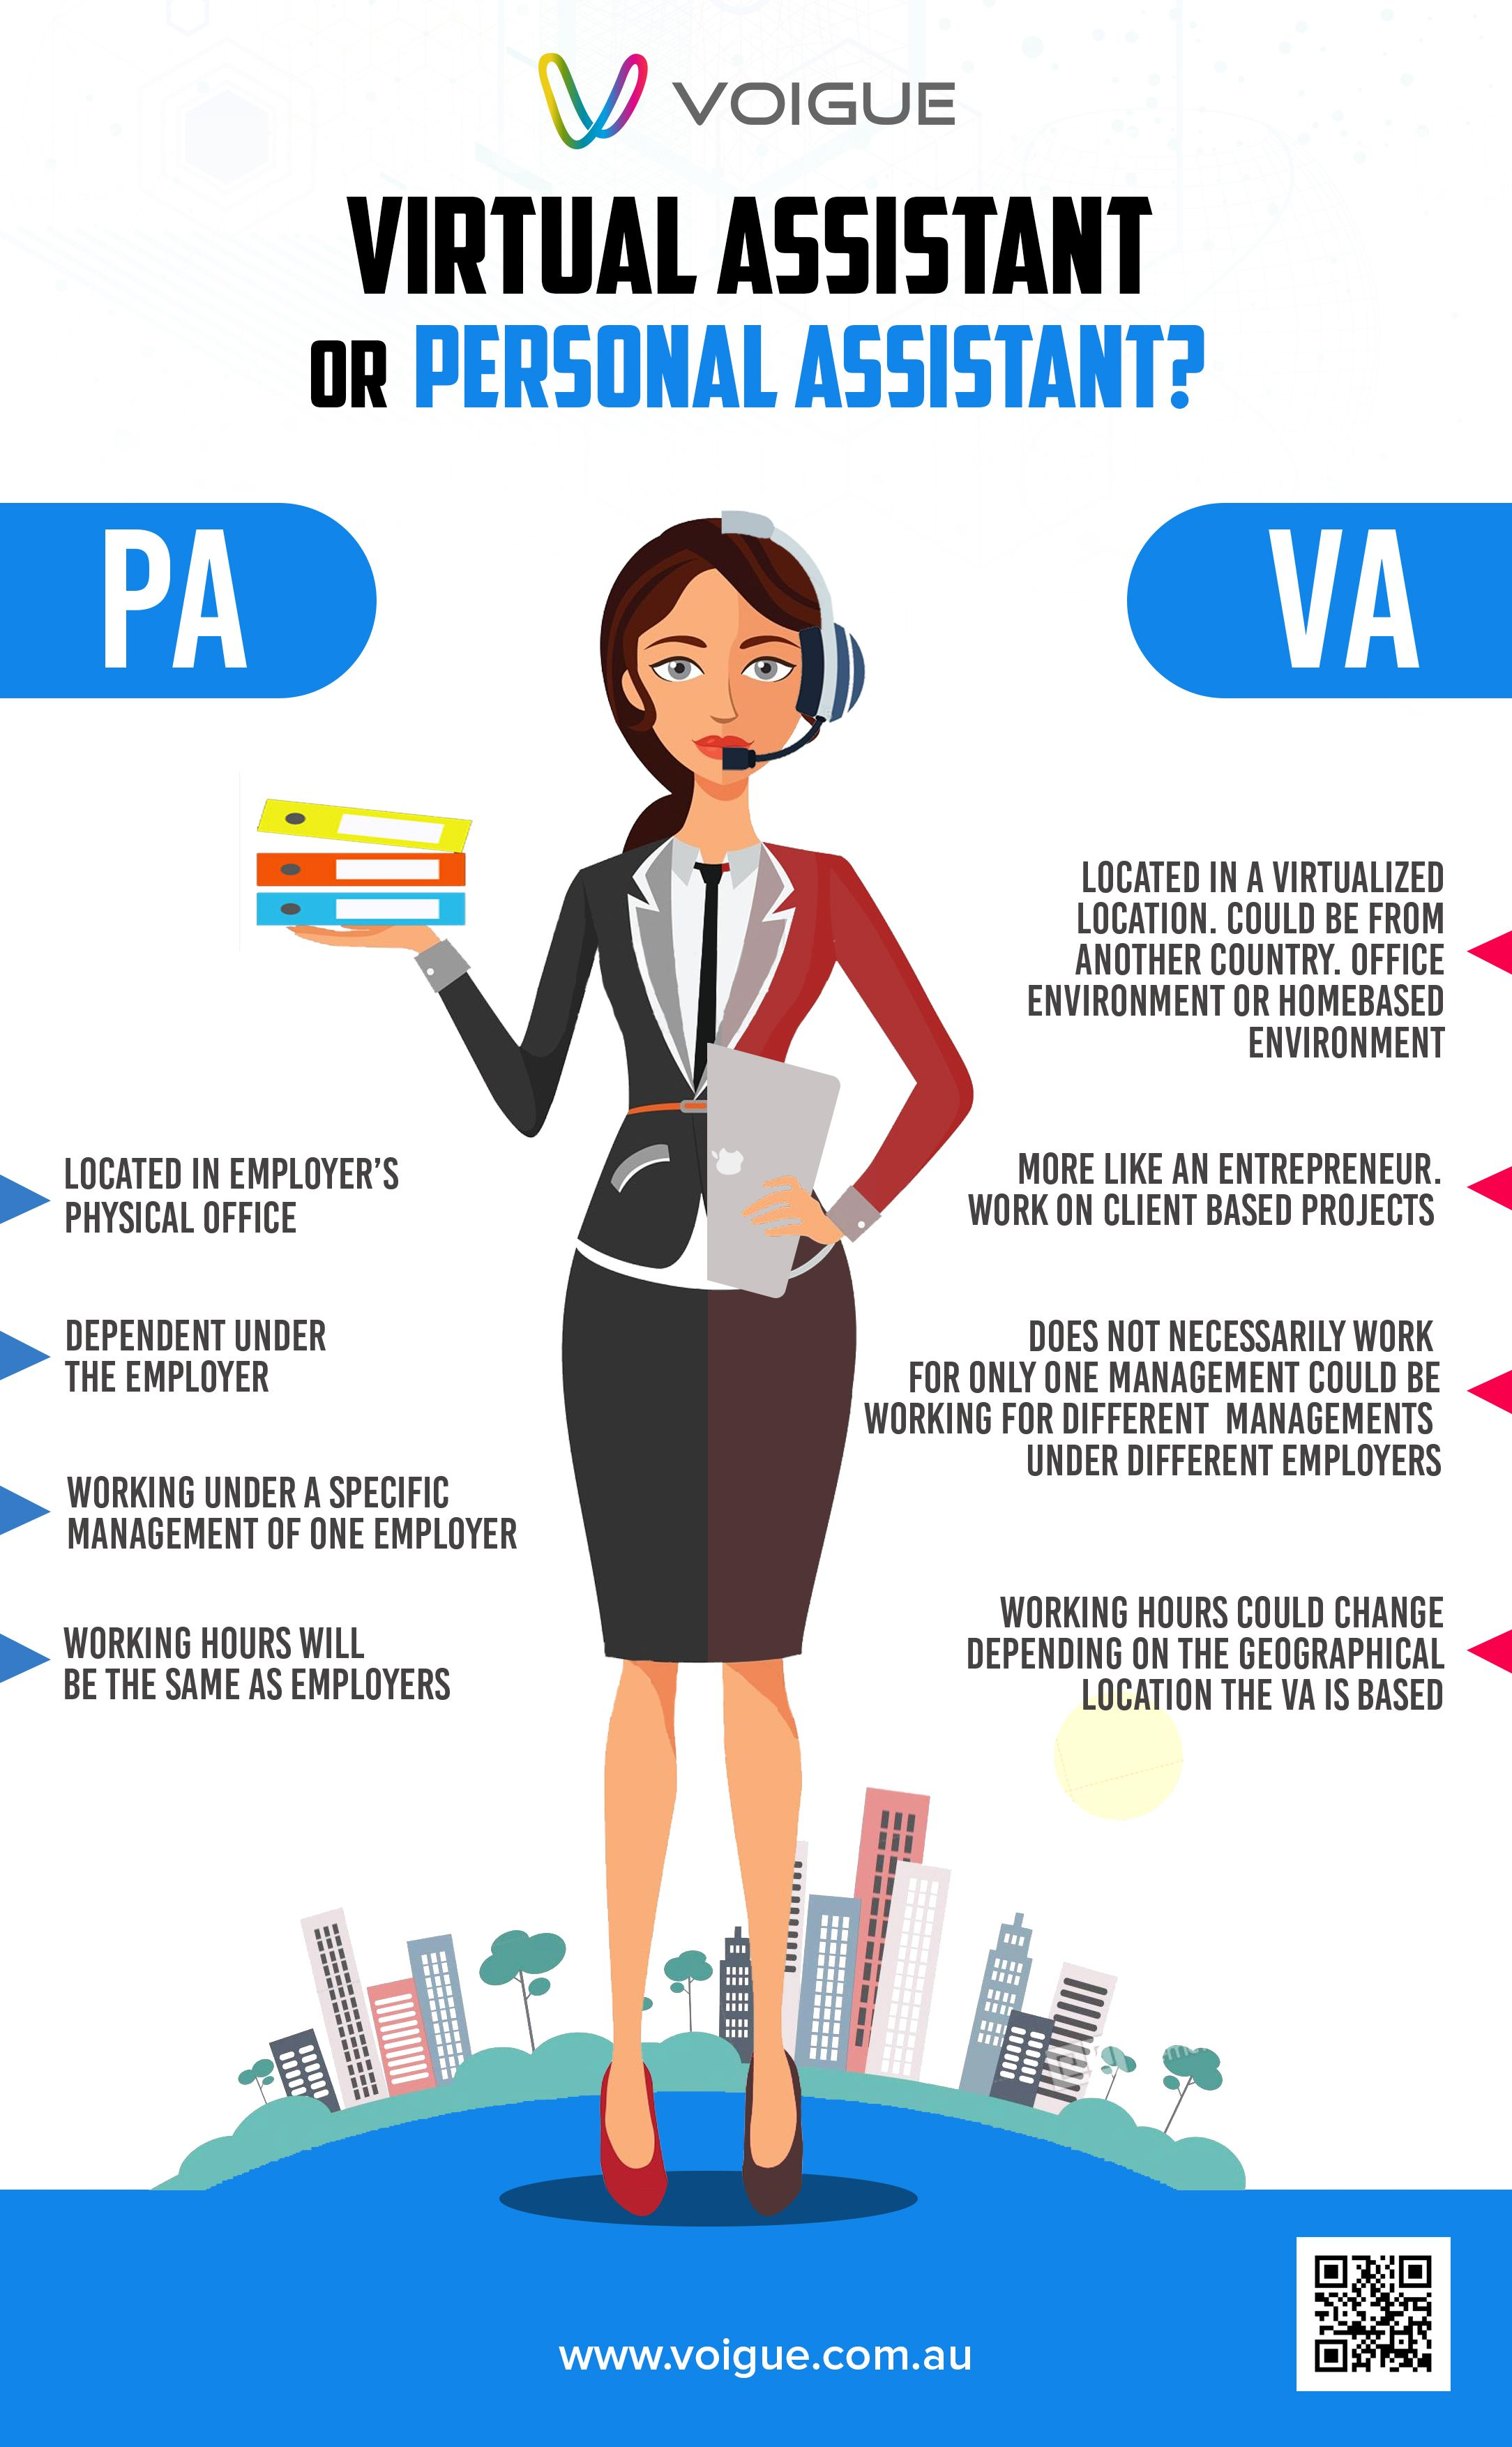 Virtual Assistants Are Very Popular Today. Have You Ever